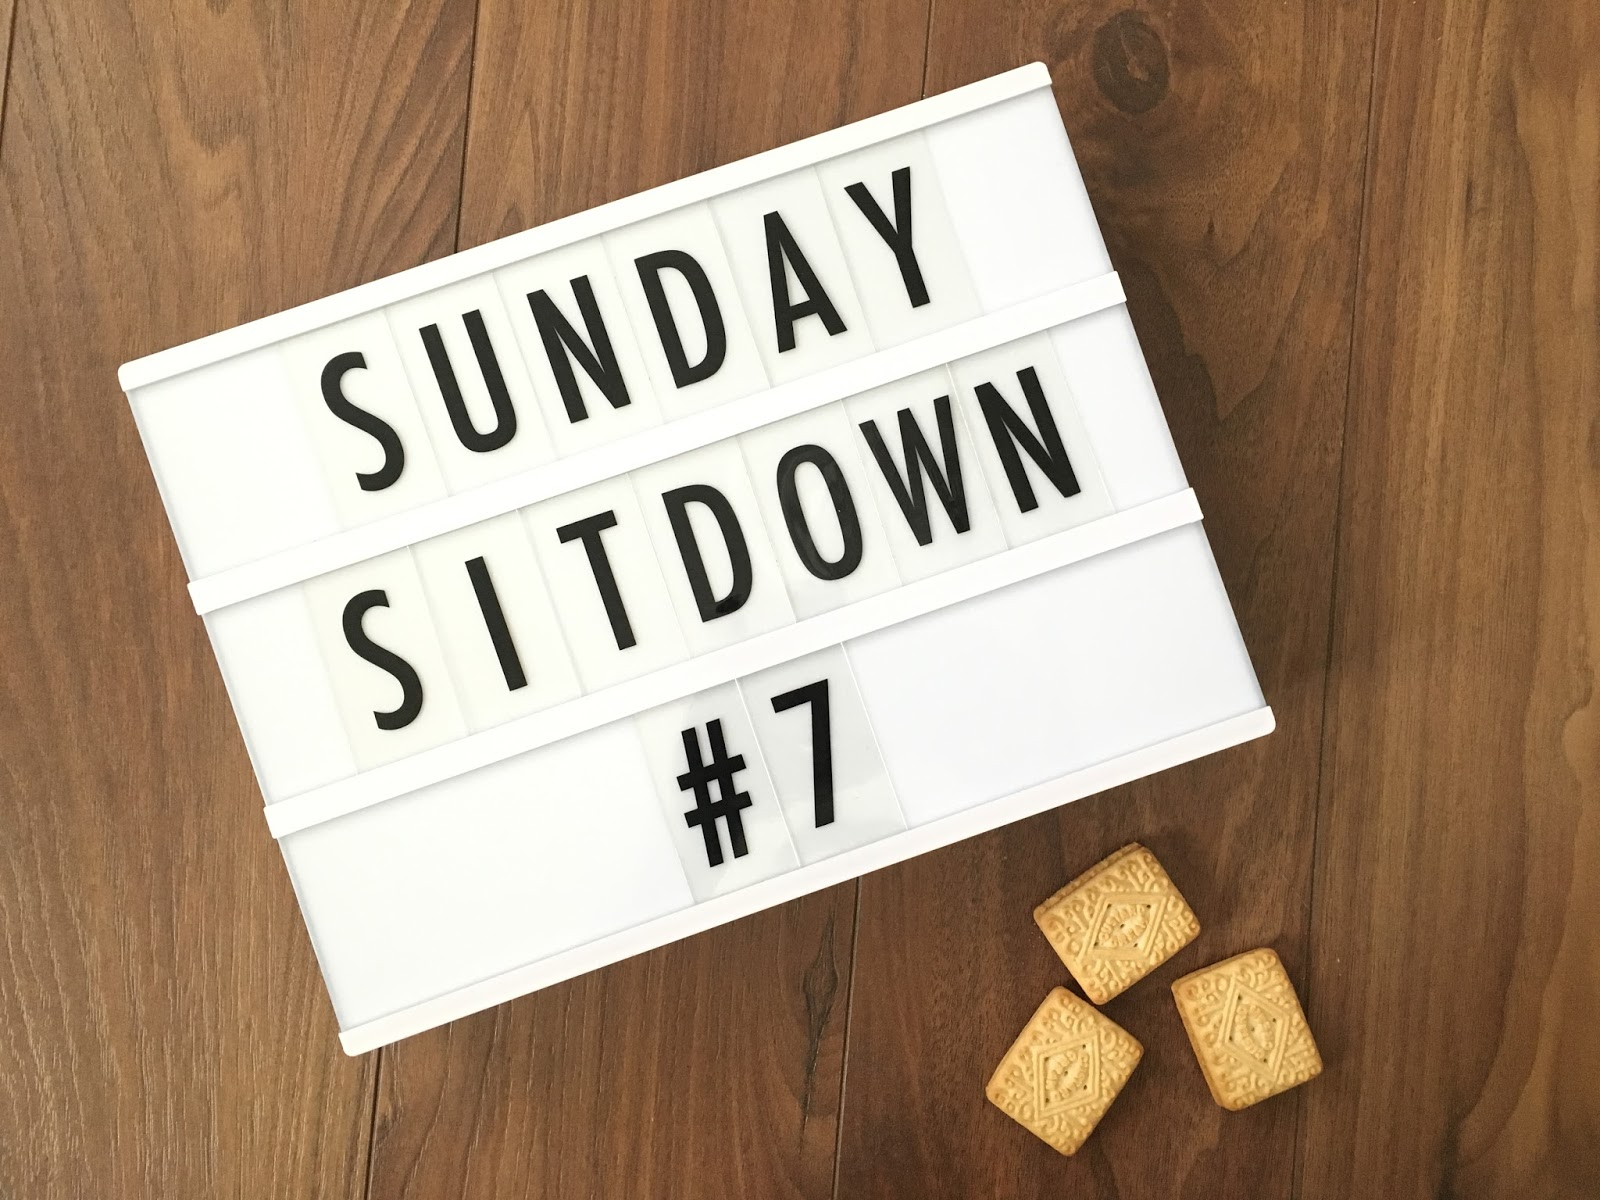 Sweet Allure Sunday Sitdown #7